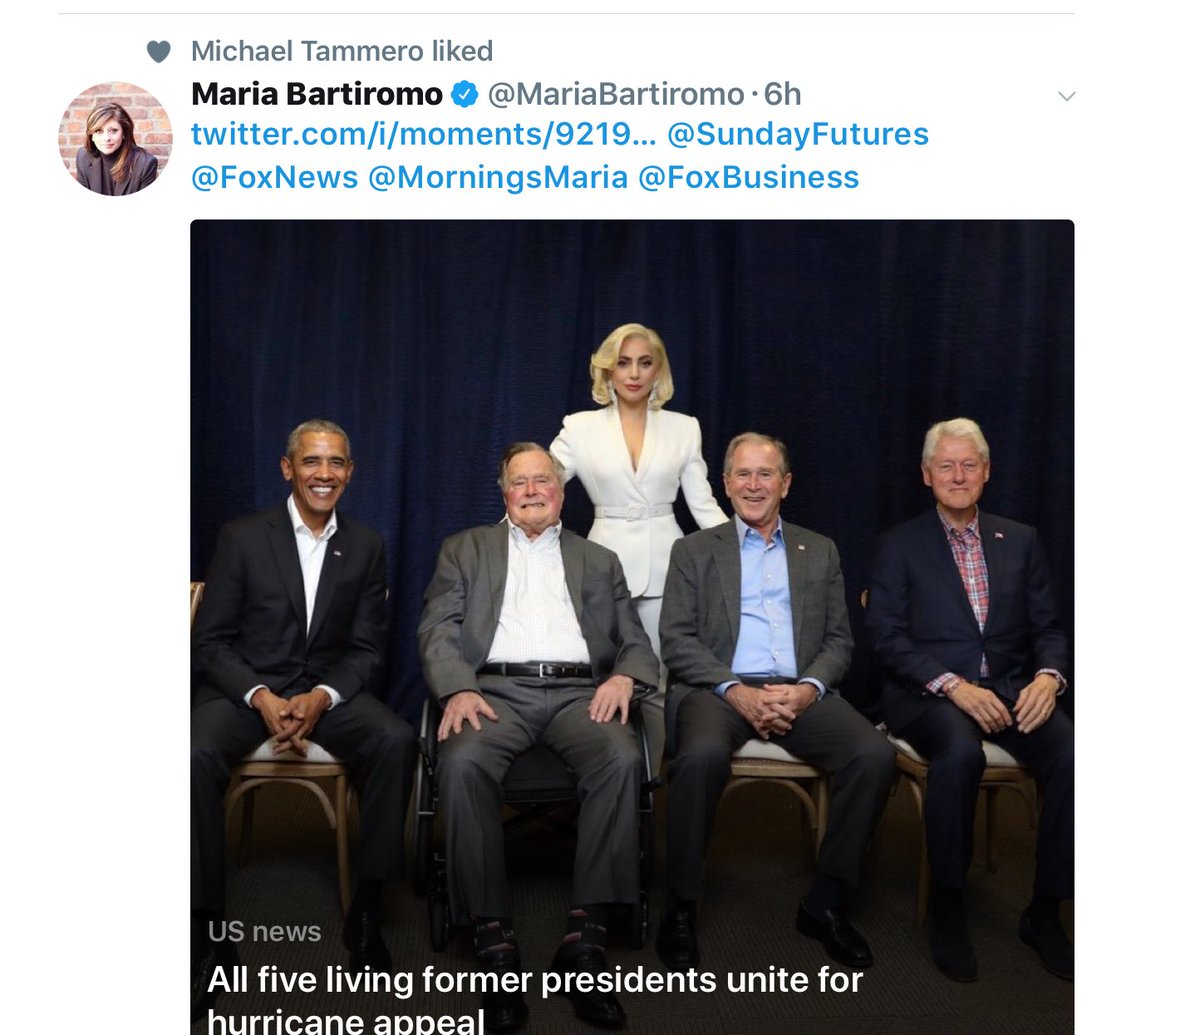 This cropped pic tweet (see pic caption) looks like Lady Gaga is one of the '5 living former Presidents')